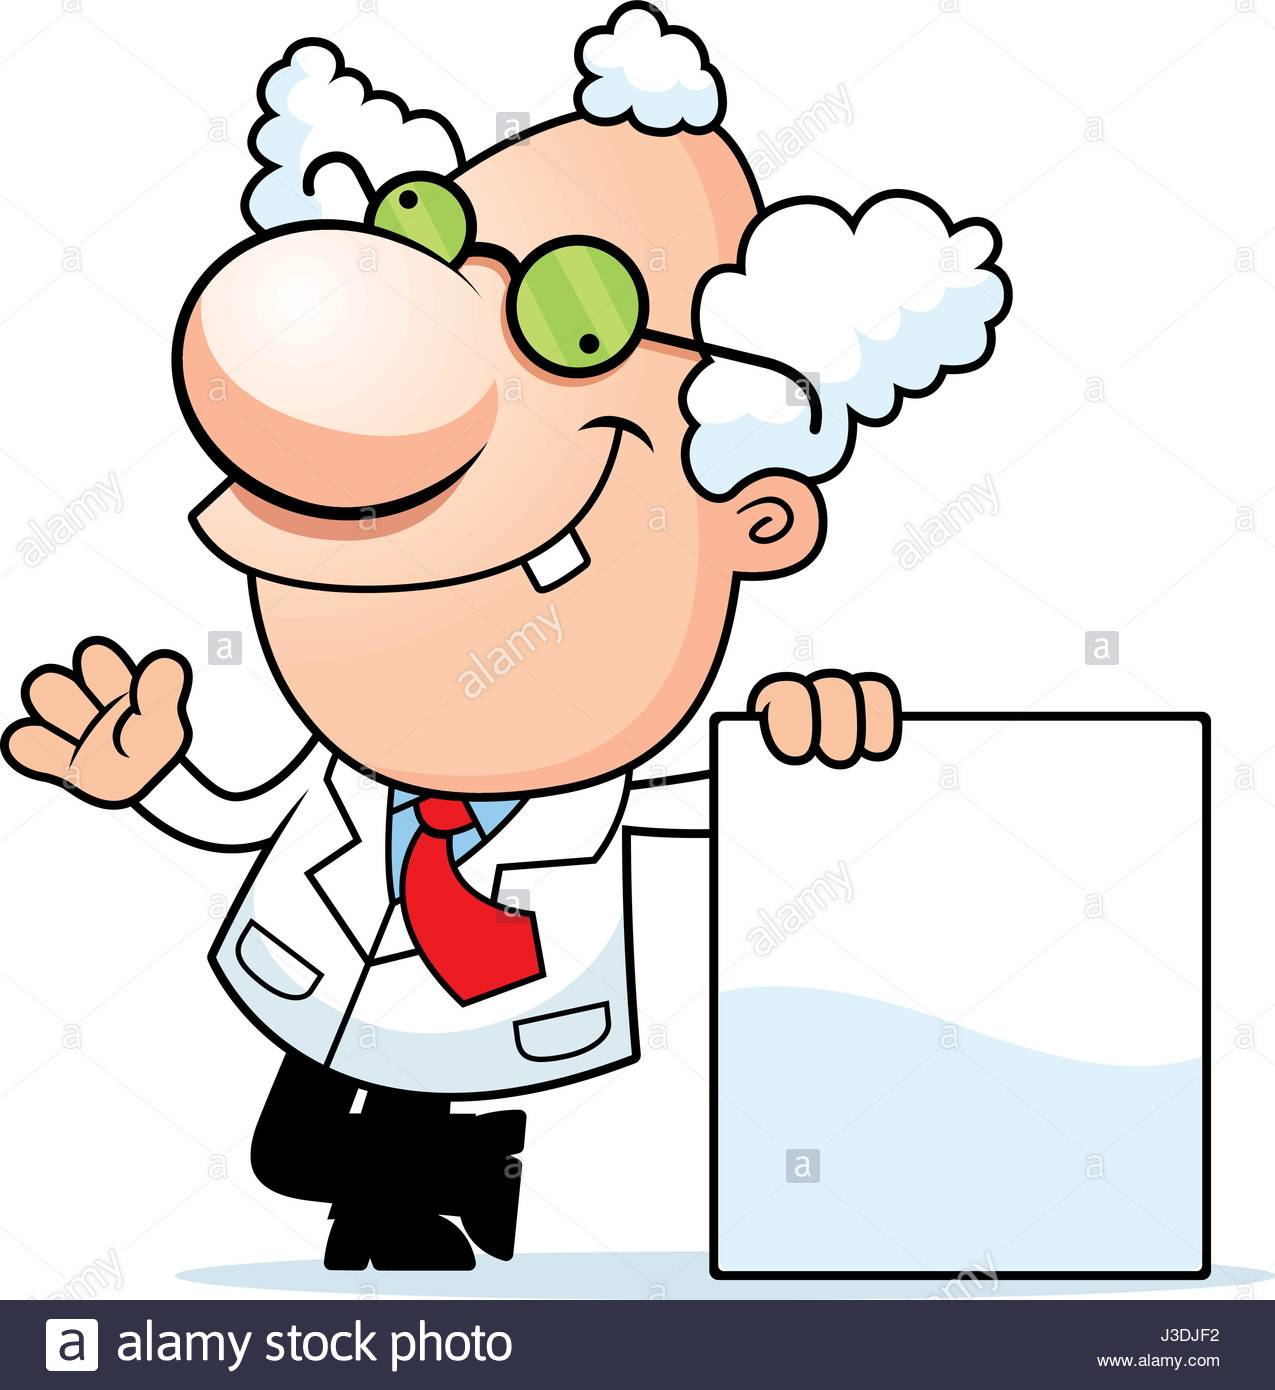 1275x1390 An Illustration Of A Cartoon Mad Scientist With A Blank Sign Stock